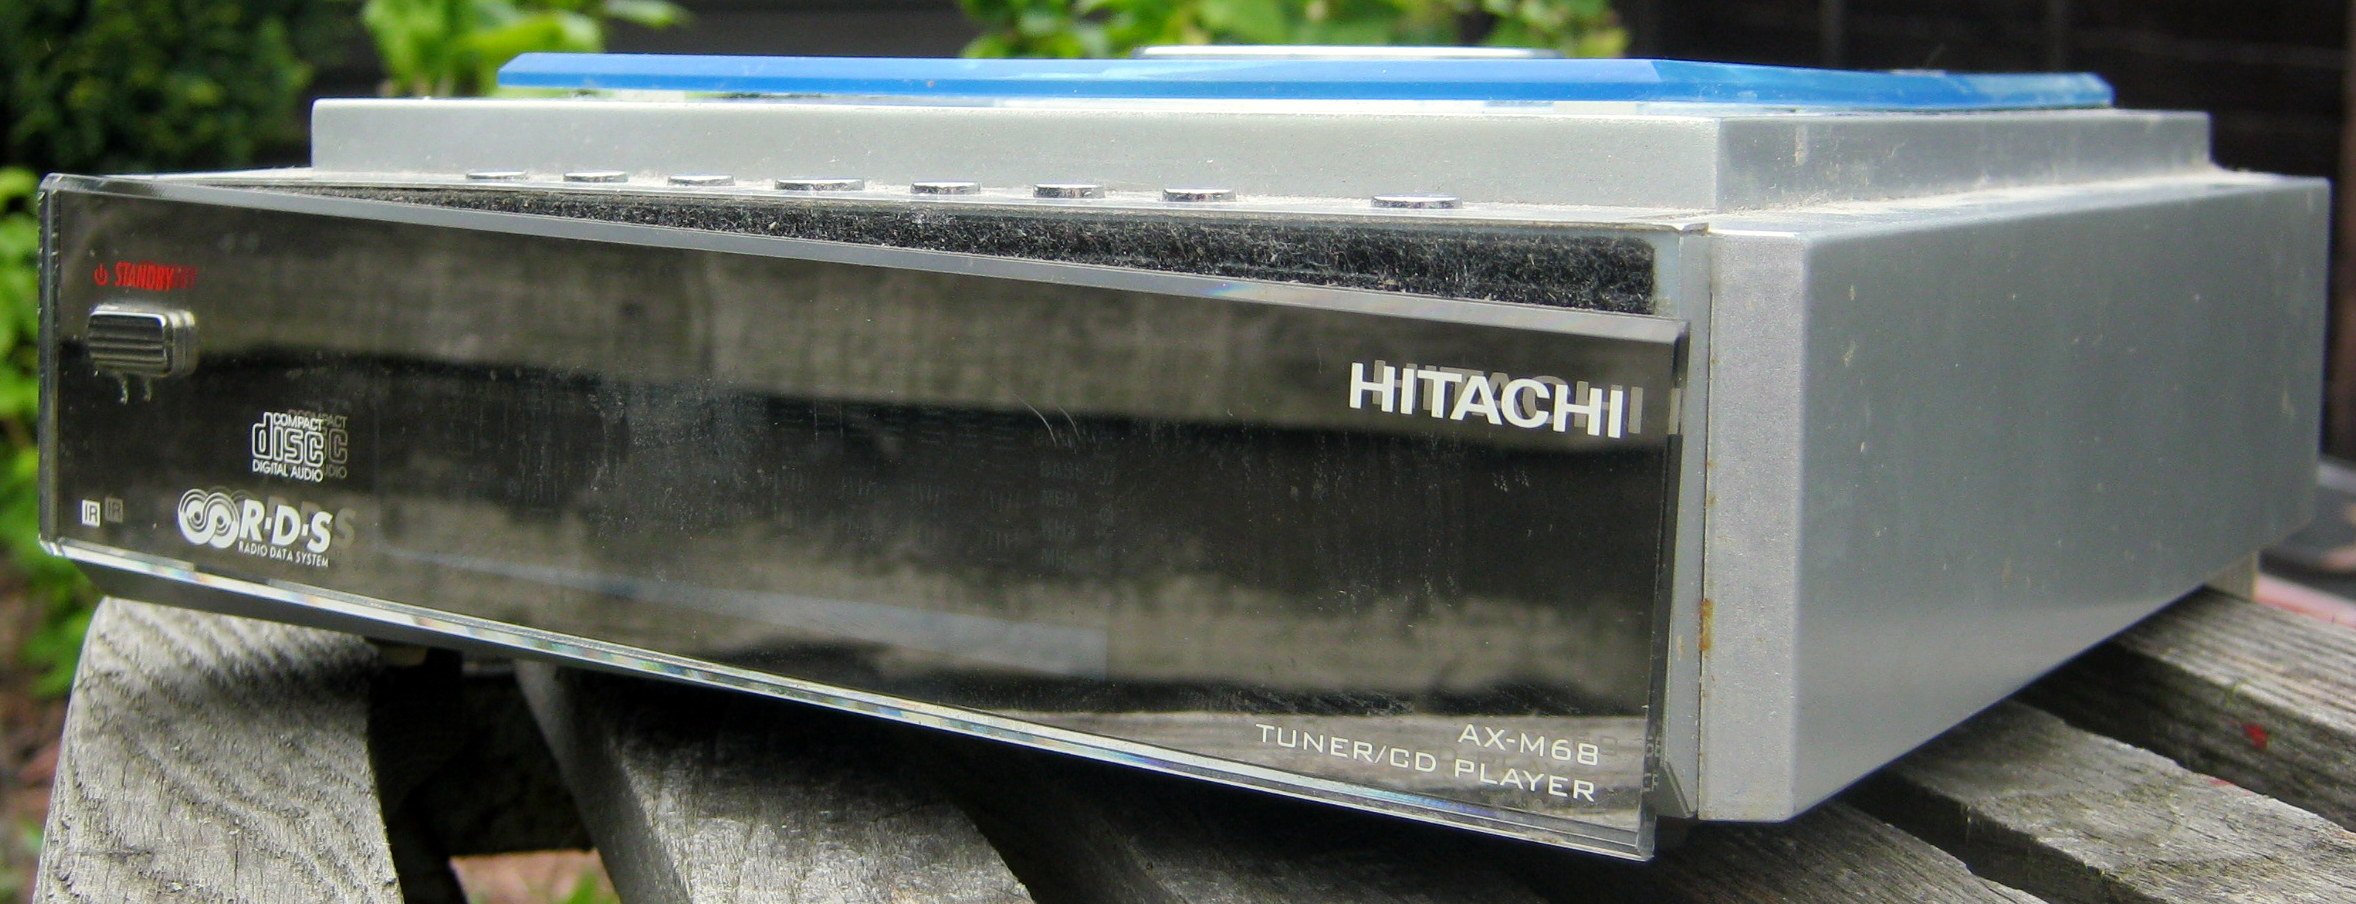 Hitachi AX-M68 Tuner/CD player front